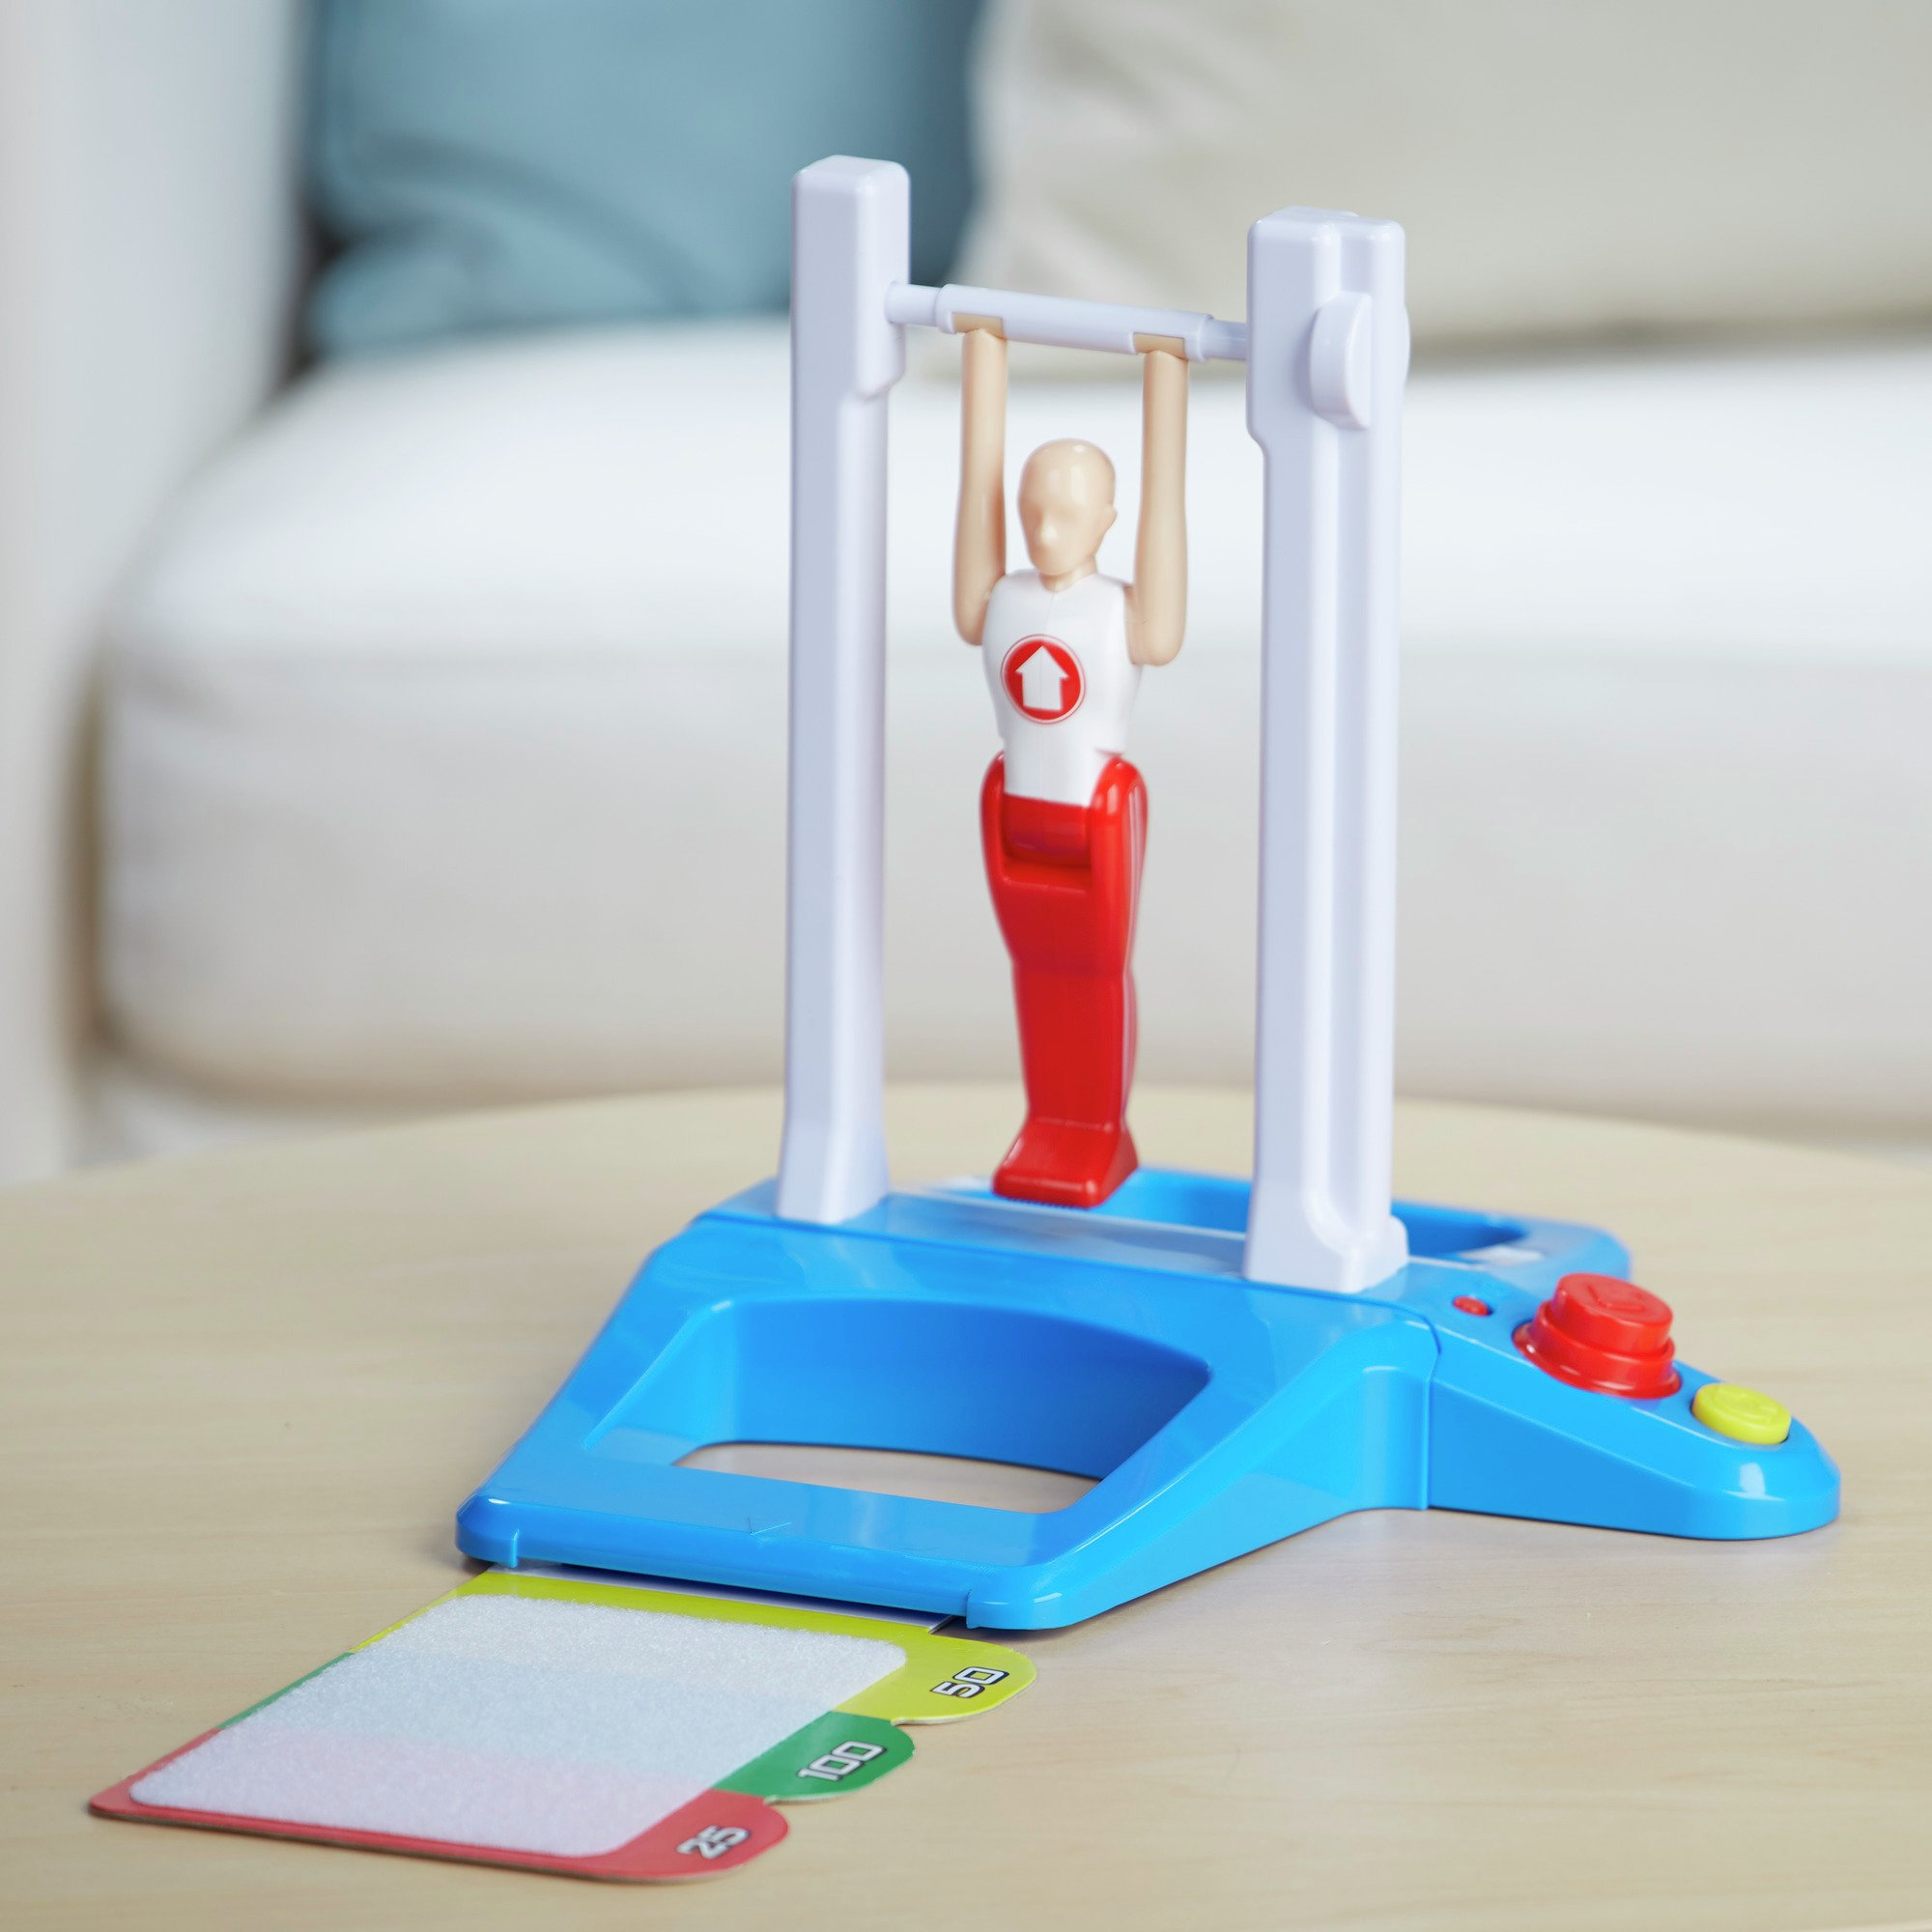 Fantastic Gymnastics Game From Hasbro Gaming